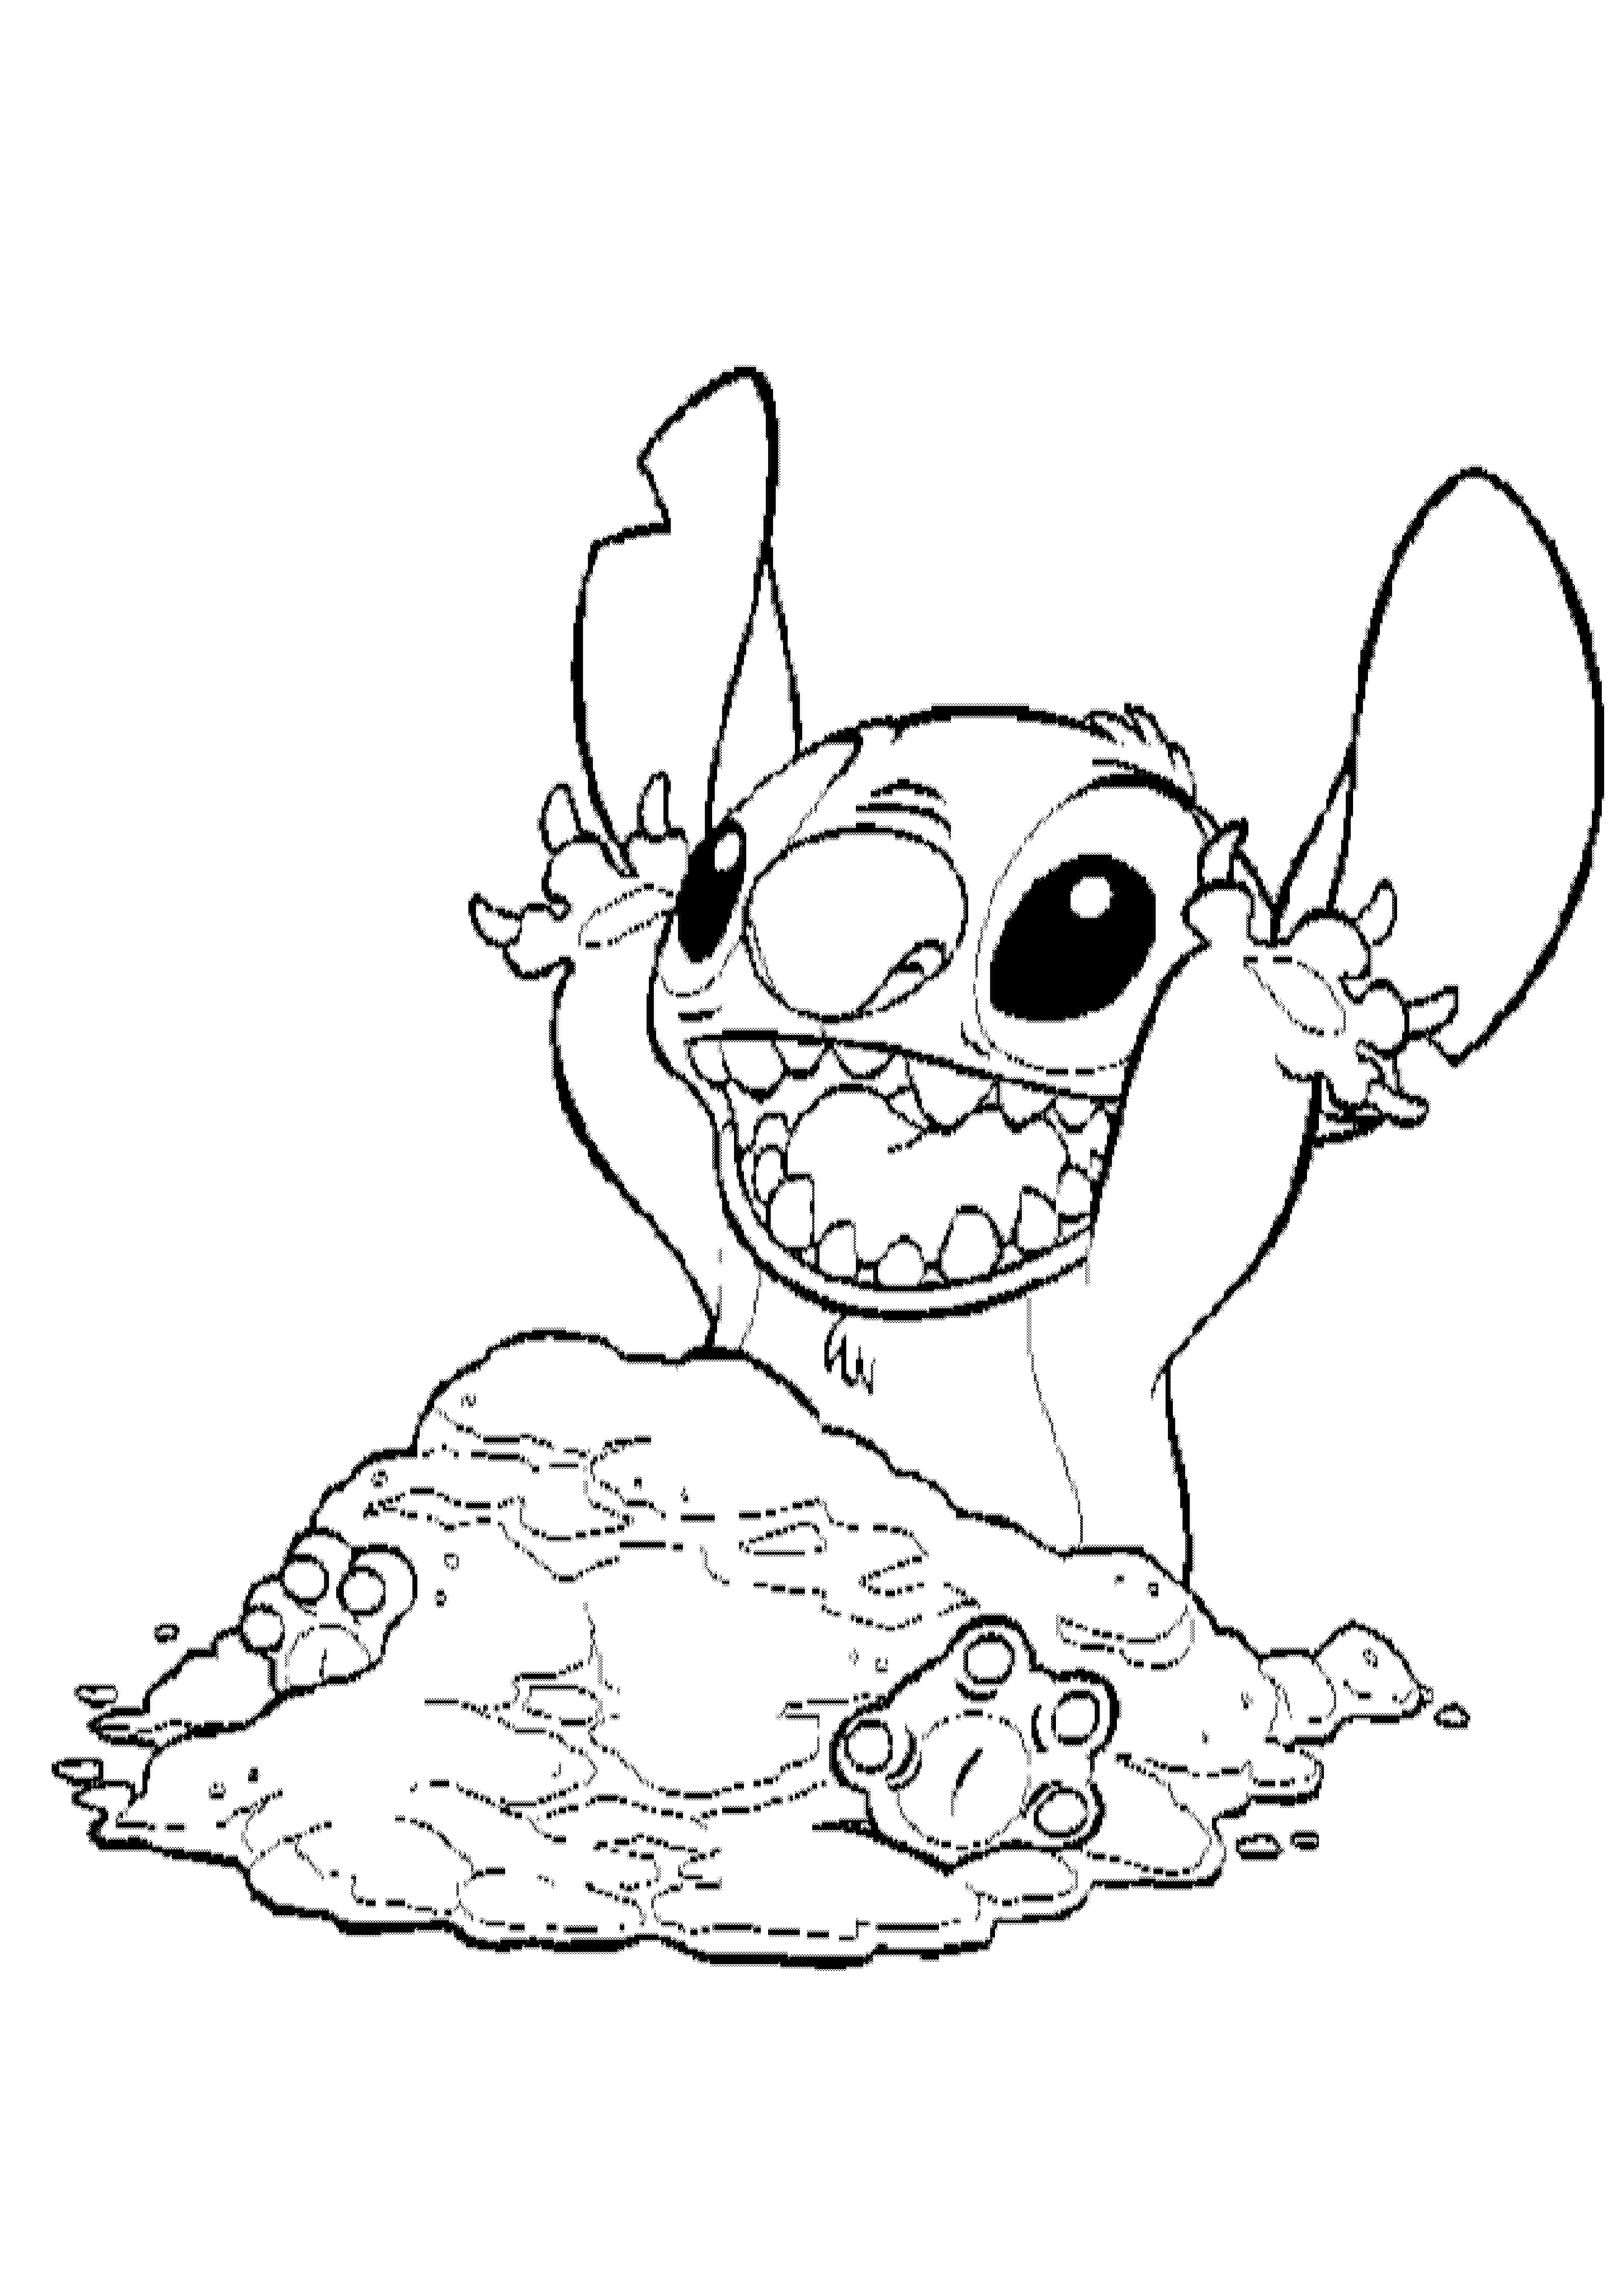 coloring worksheets cute lilo and stitch coloring pages k5 worksheets cute worksheets coloring